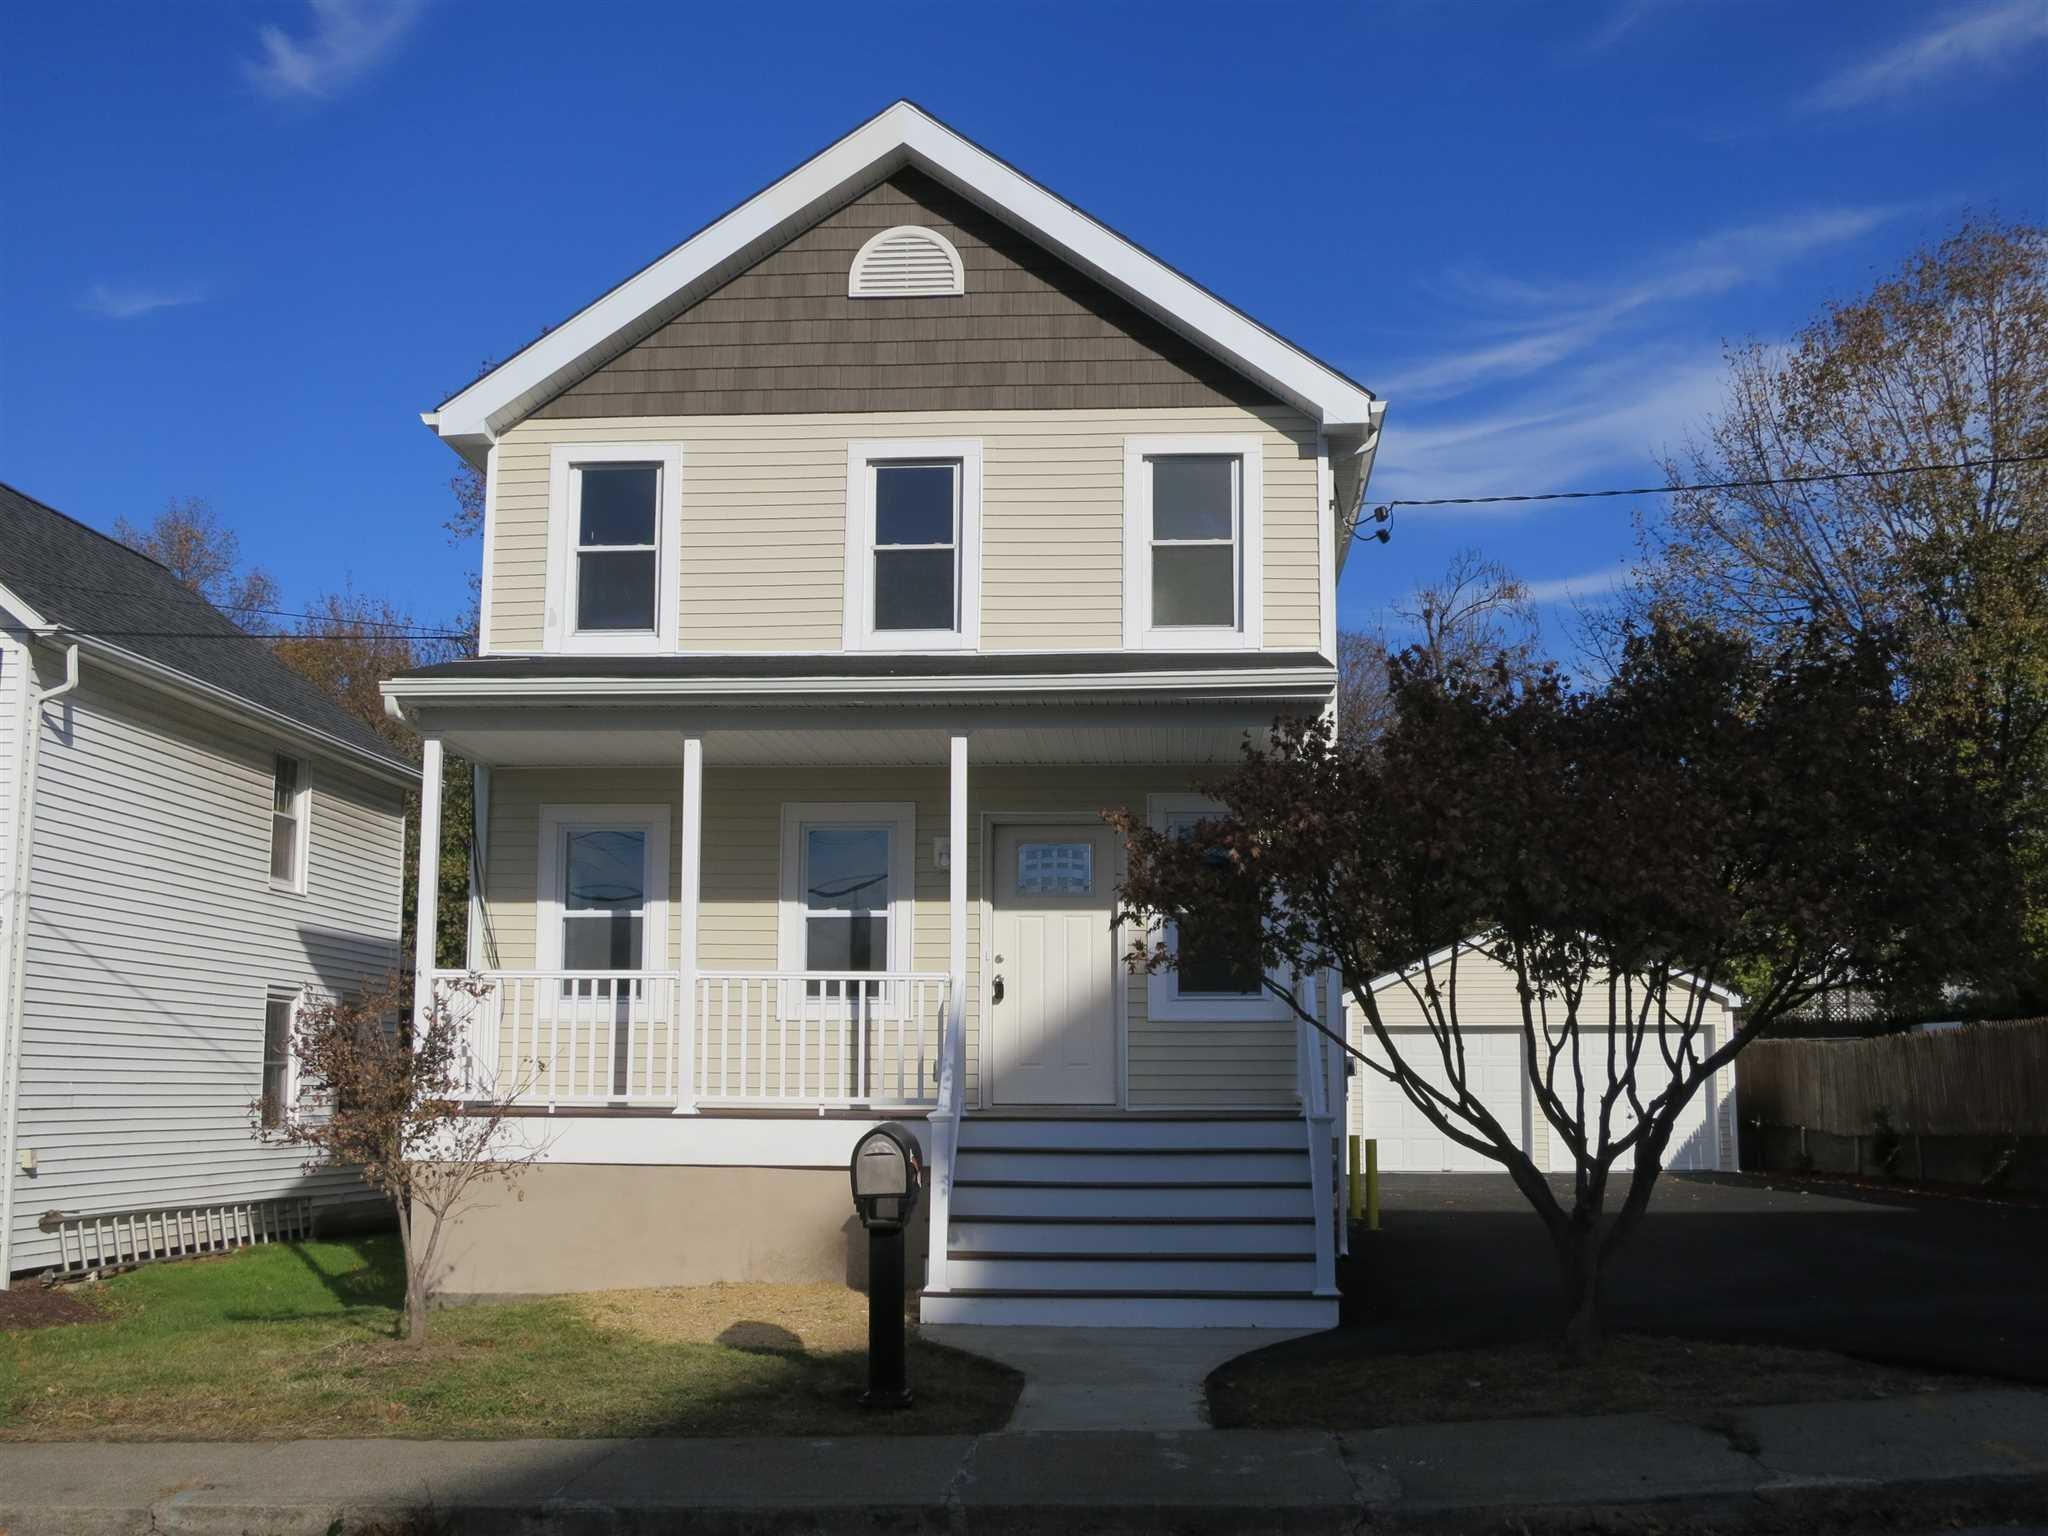 Single Family Home for Sale at 35 KENT STREET 35 KENT STREET Beacon, New York 12508 United States